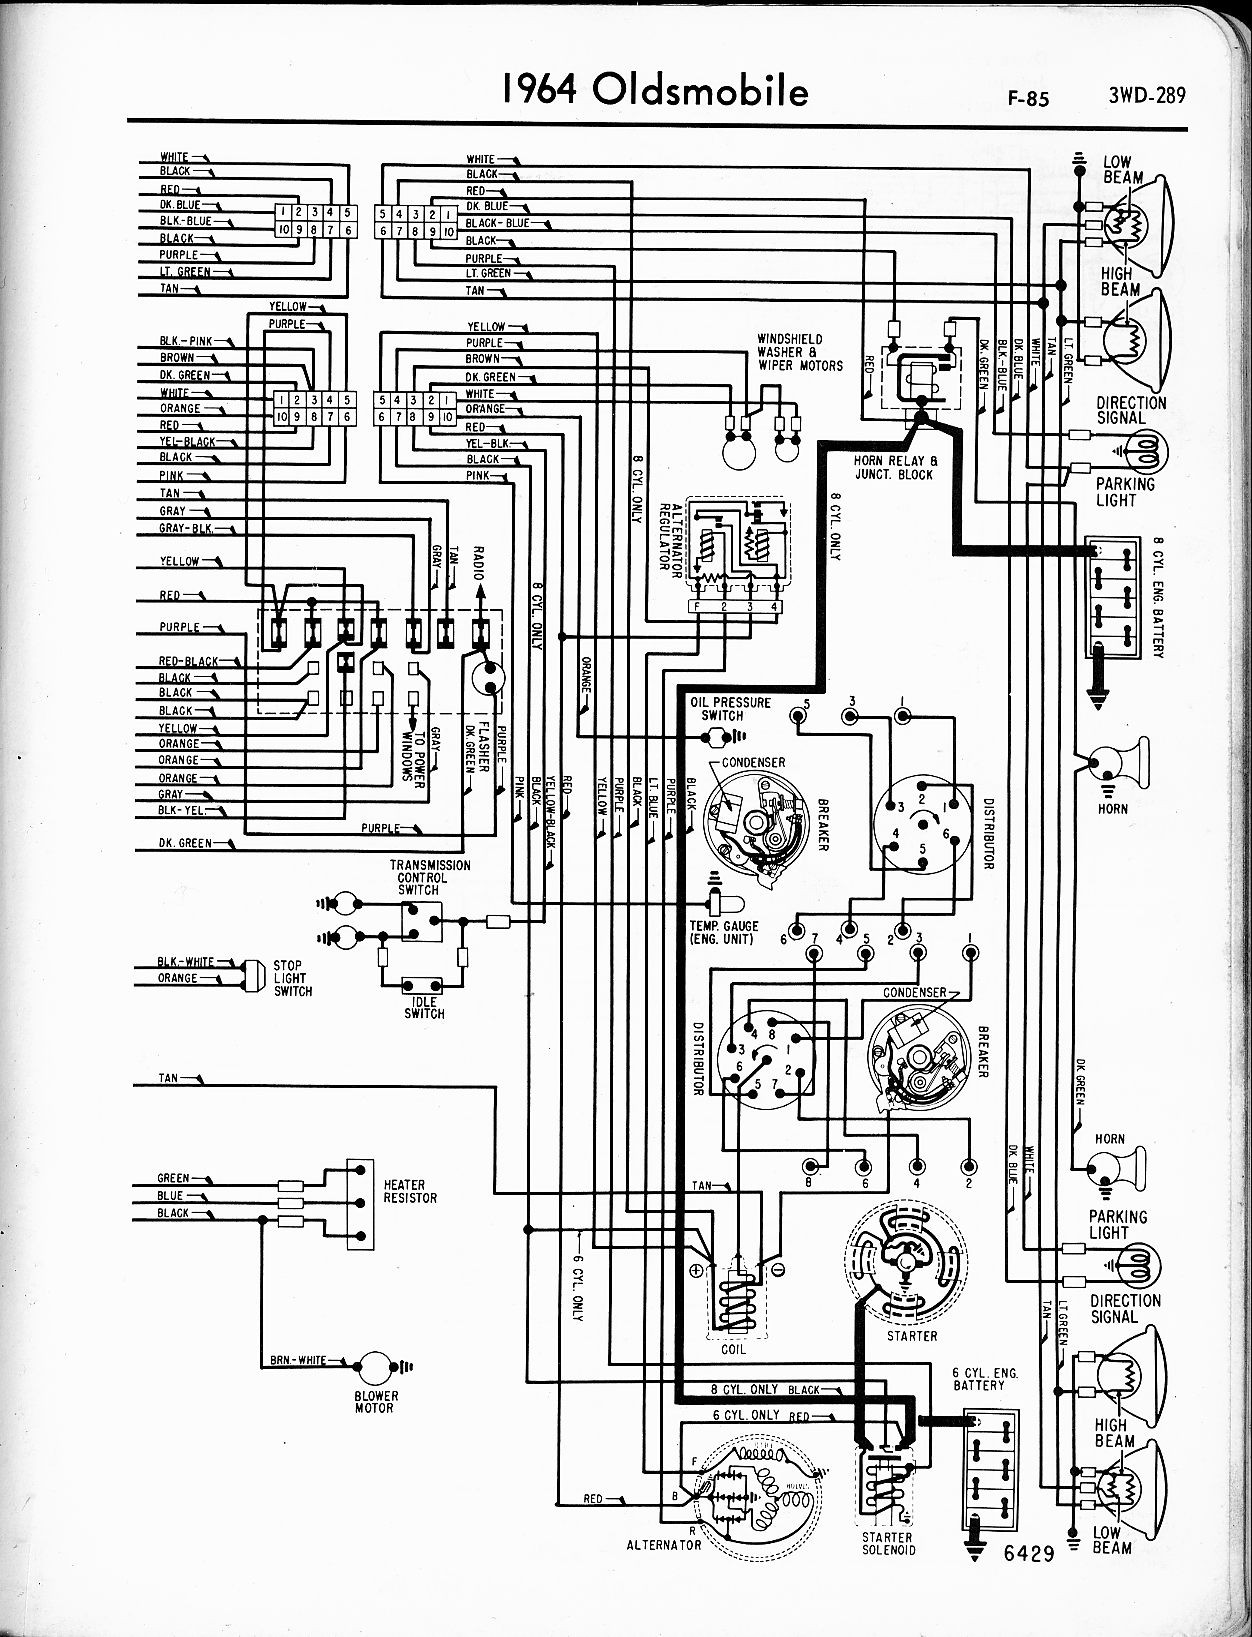 1957 oldsmobile wiring diagram 14 3 kenmo lp de \u2022 67 Cutlass Convertible Wiring-Diagram 1956 oldsmobile 88 wiring diagram wiring diagram blog data rh 3 1 tefolia de 1998 oldsmobile wiring diagram gm wiring diagrams for dummies